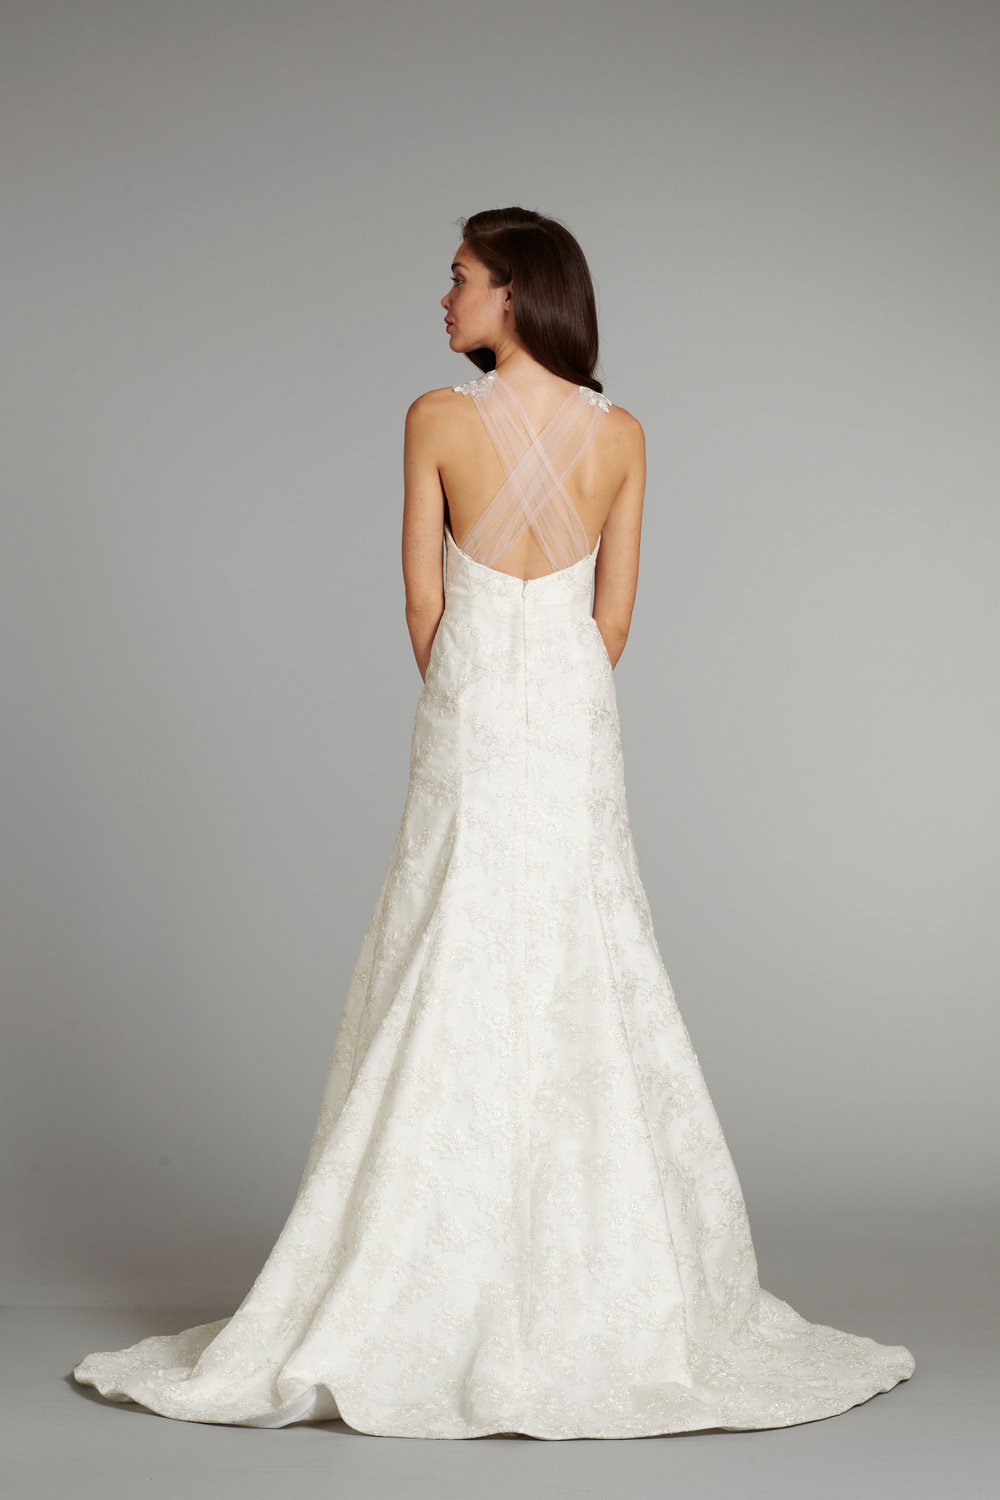 Bridal-gown-wedding-dress-jlm-hayley-paige-blush-fall-2012-amaryllis-back.full